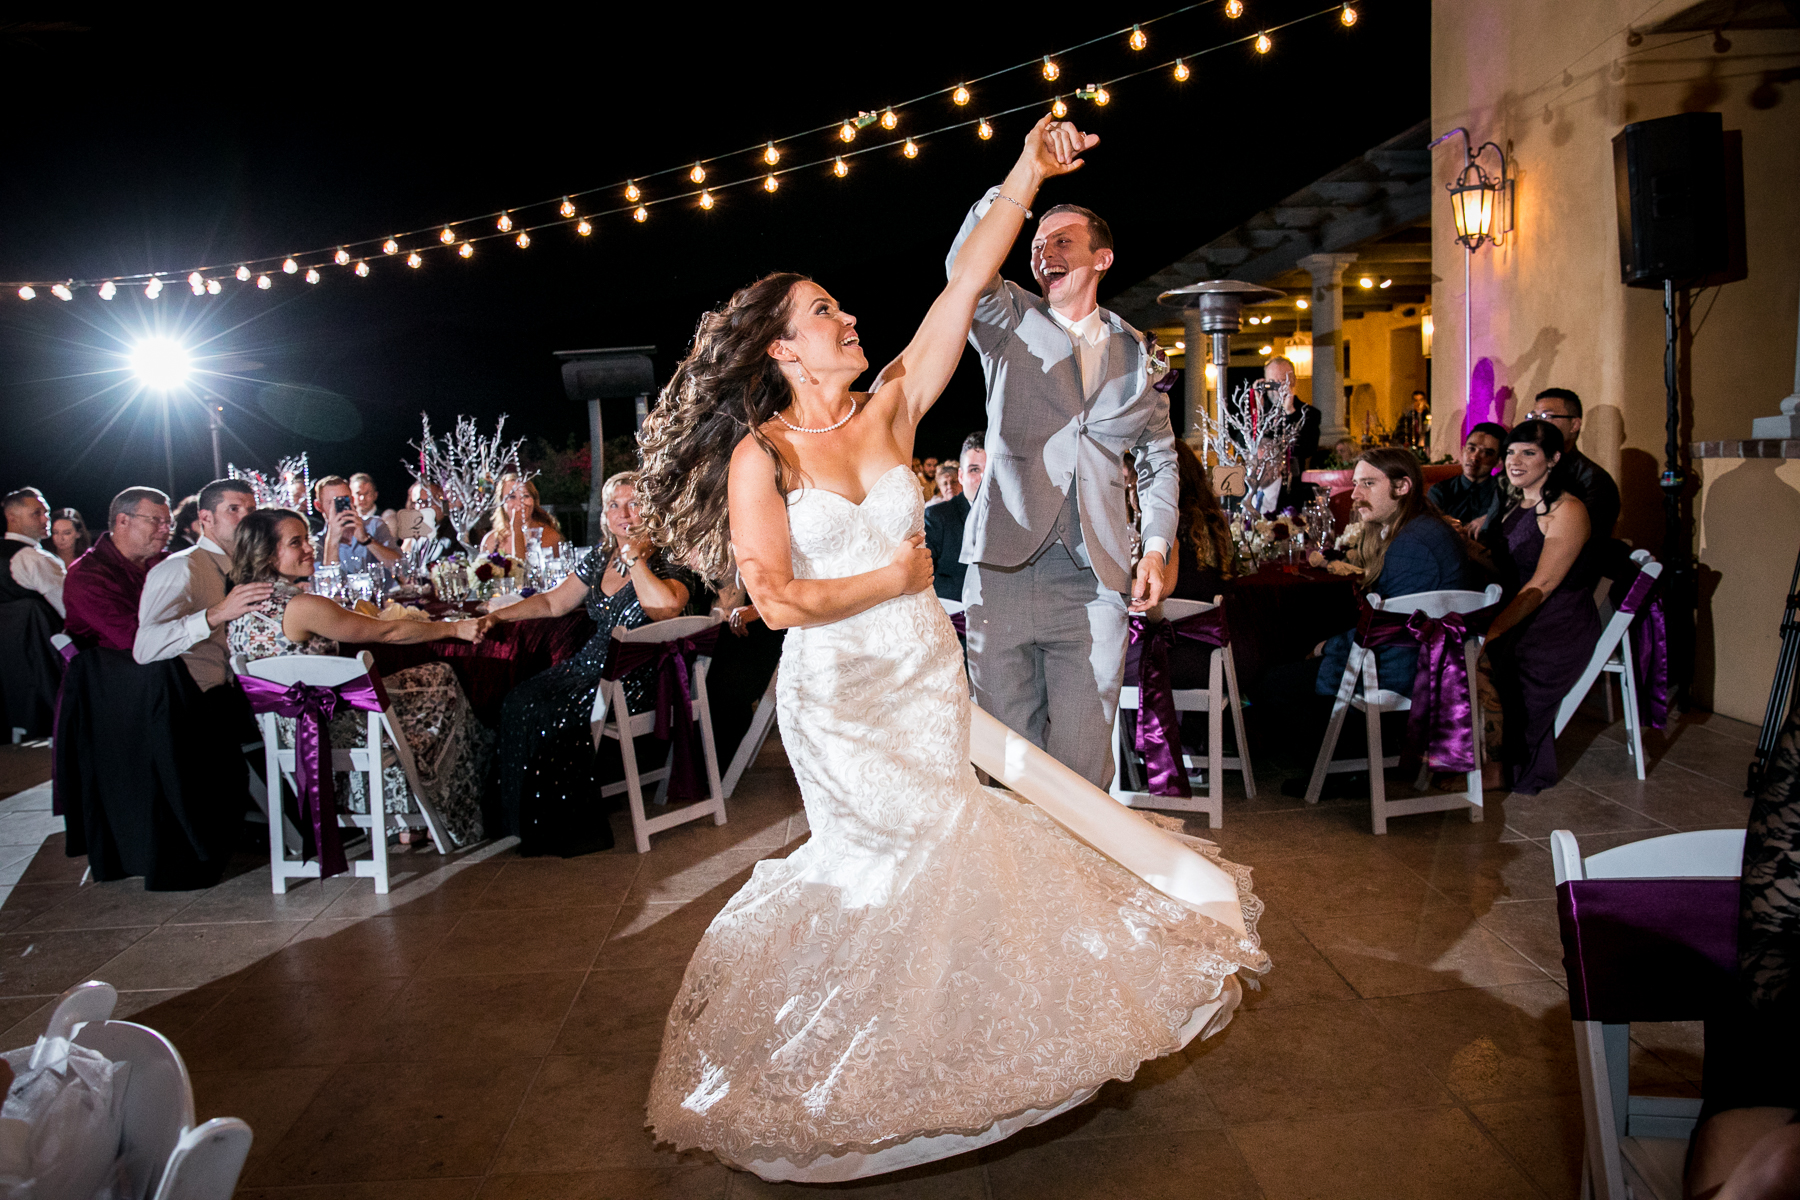 groom spins bride during first dance at wedding at the retreat photographer